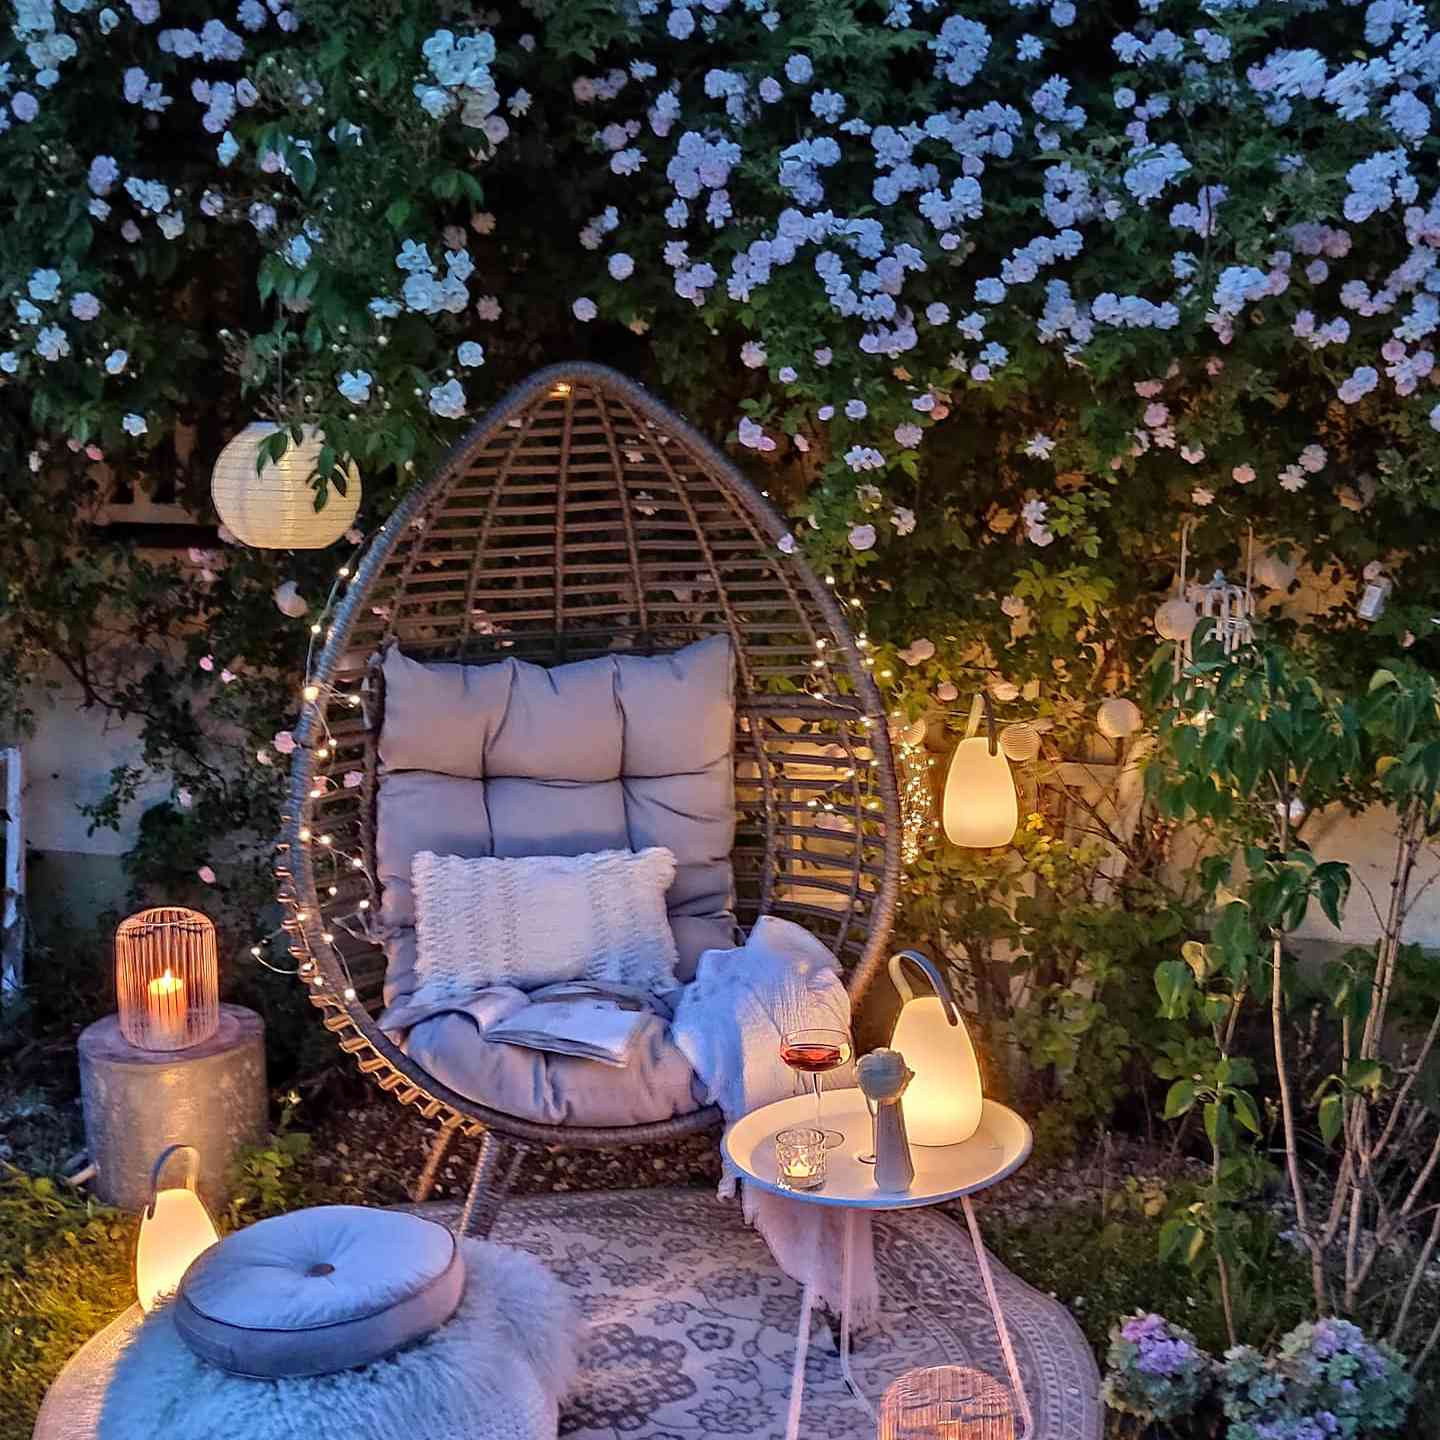 a cocoon chair is surrounded by soft lighting, a rug, and a blooming tree for the prettiest and coziest backyard retreat